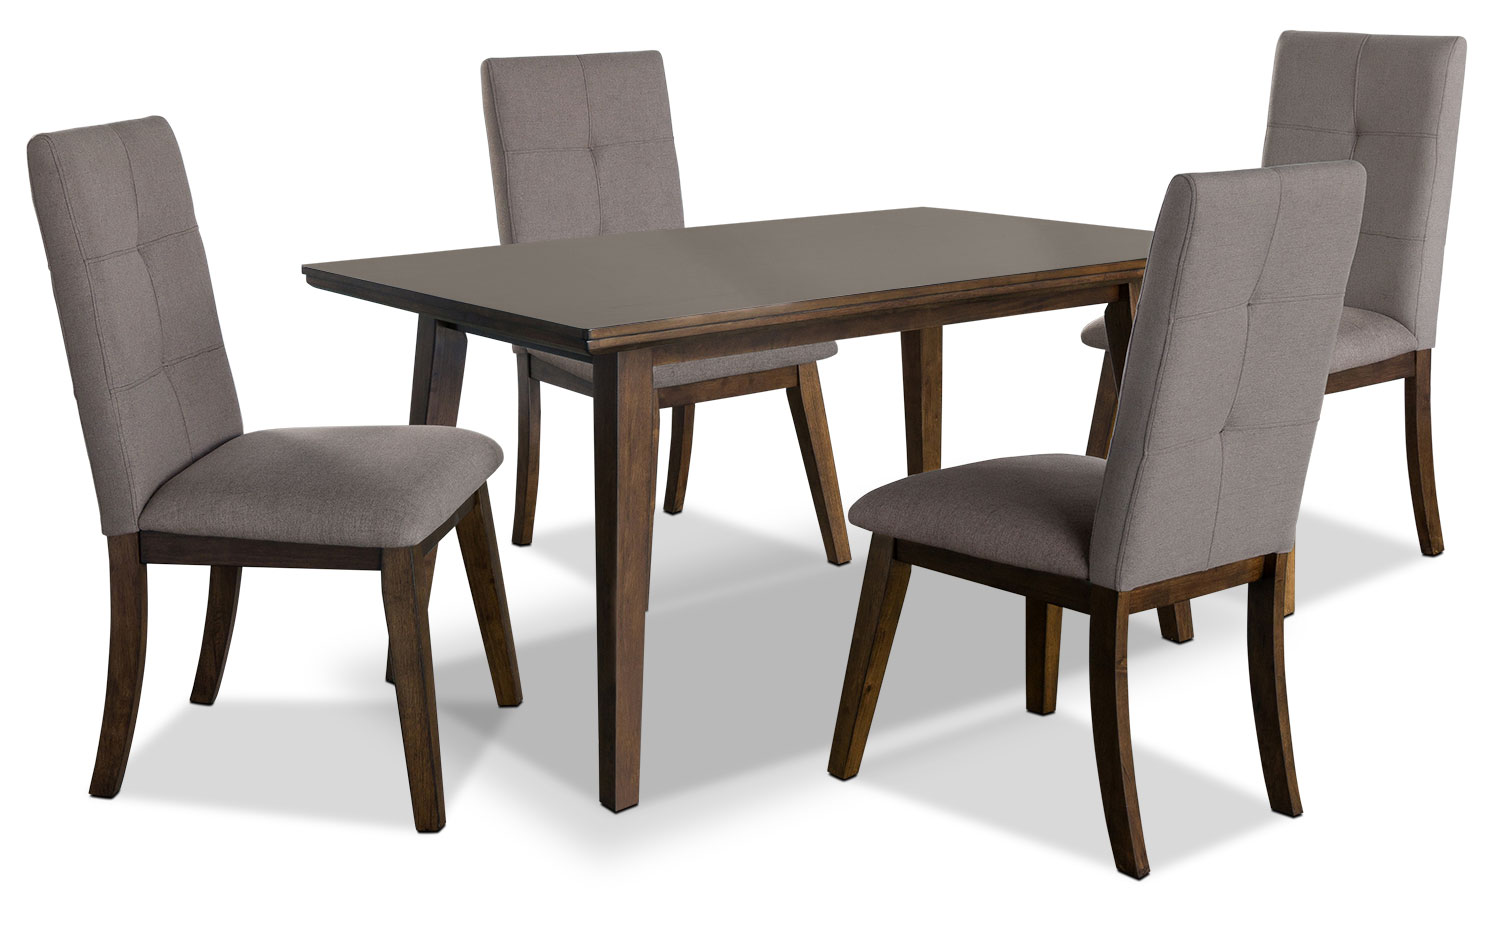 Chelsea 5-Piece Dining Package with Brown Chairs